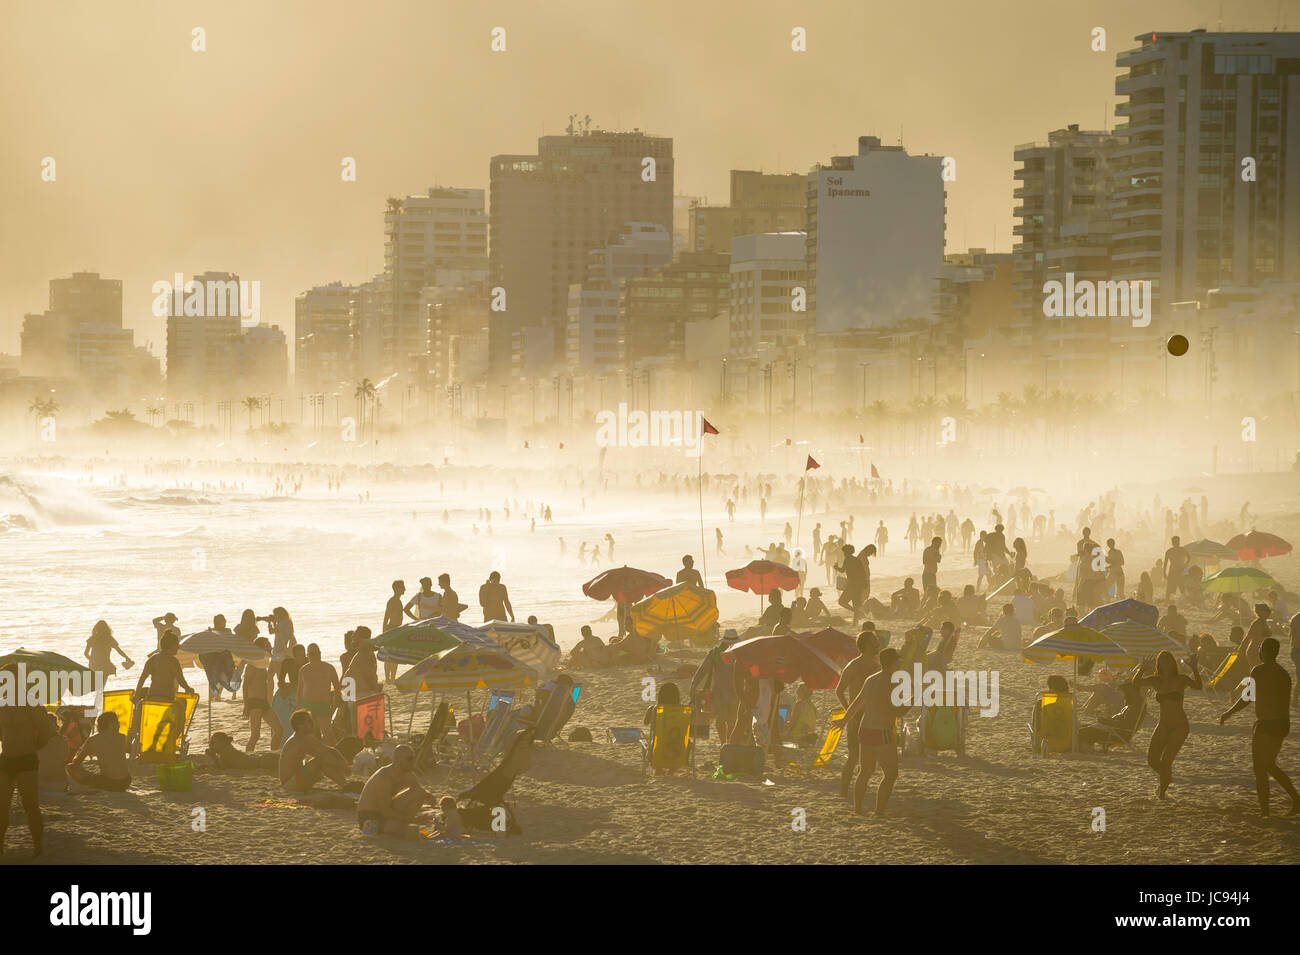 RIO DE JANEIRO - MARCH 20, 2017: Silhouettes of people enjoing the golden misty sunset shores of Ipanema Beach in - Stock Image